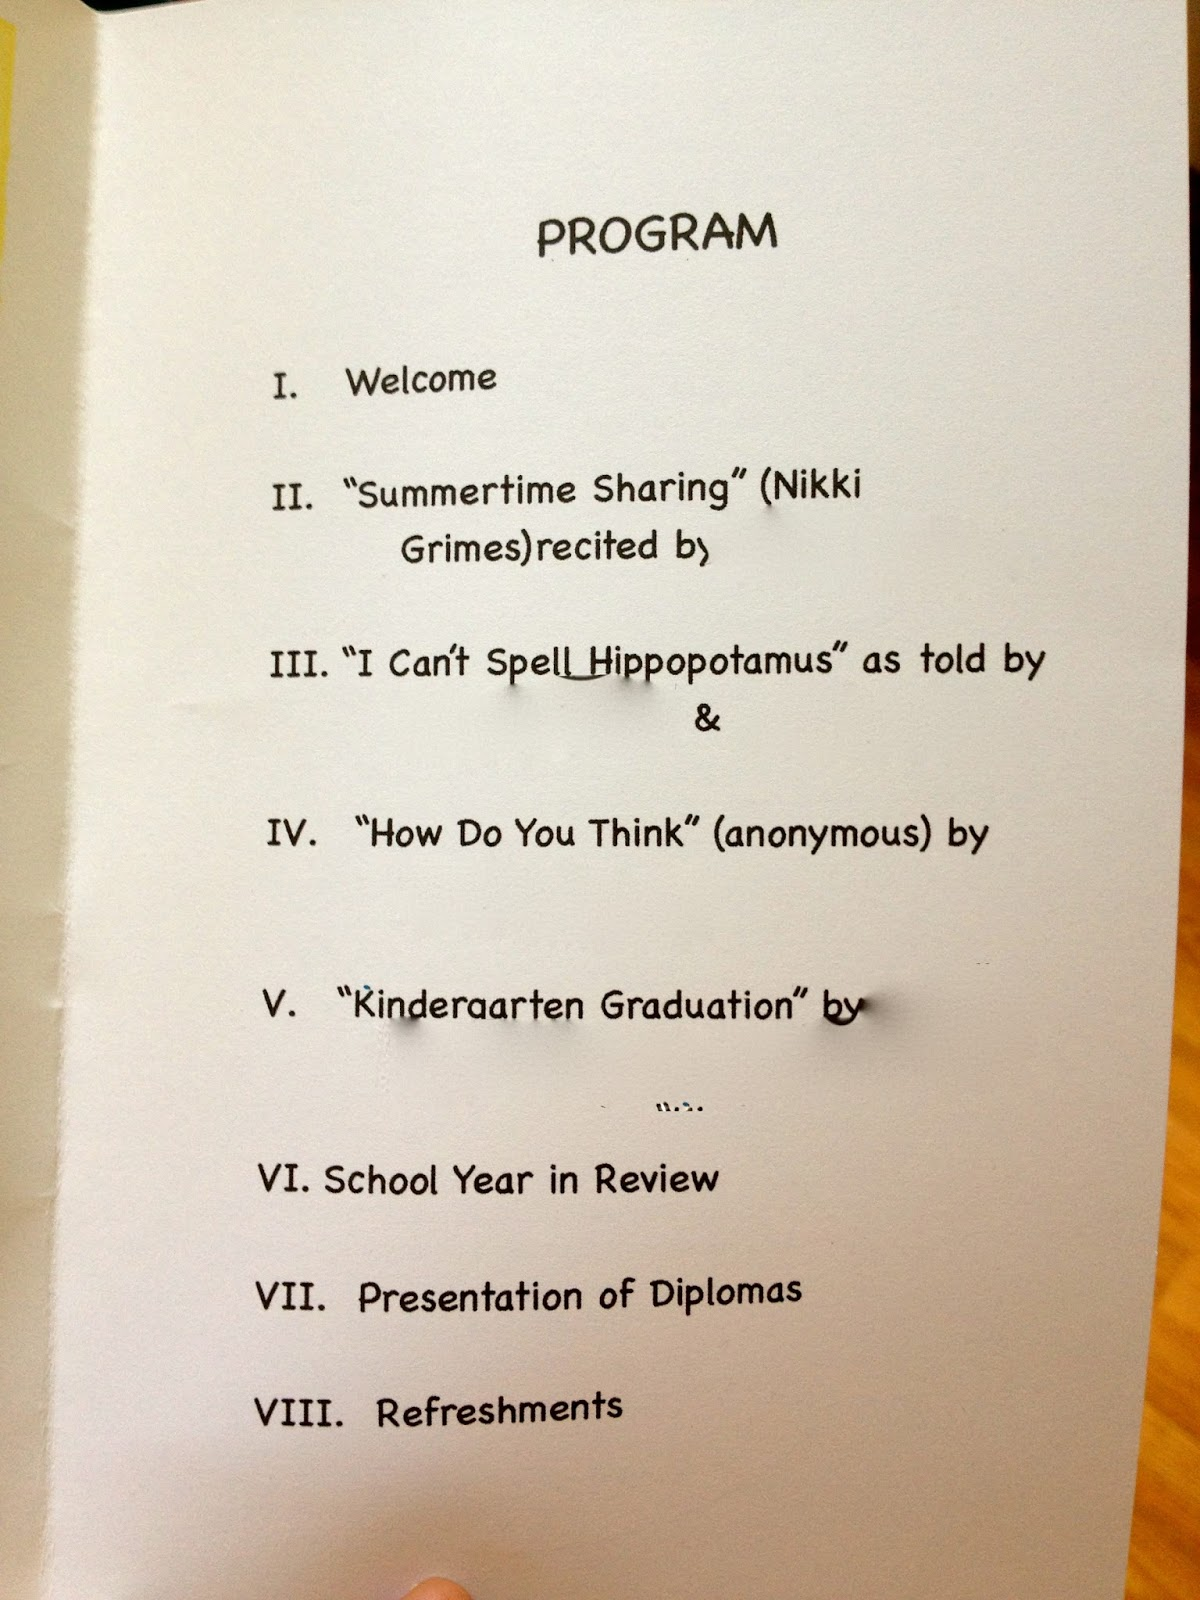 preschool graduation program template